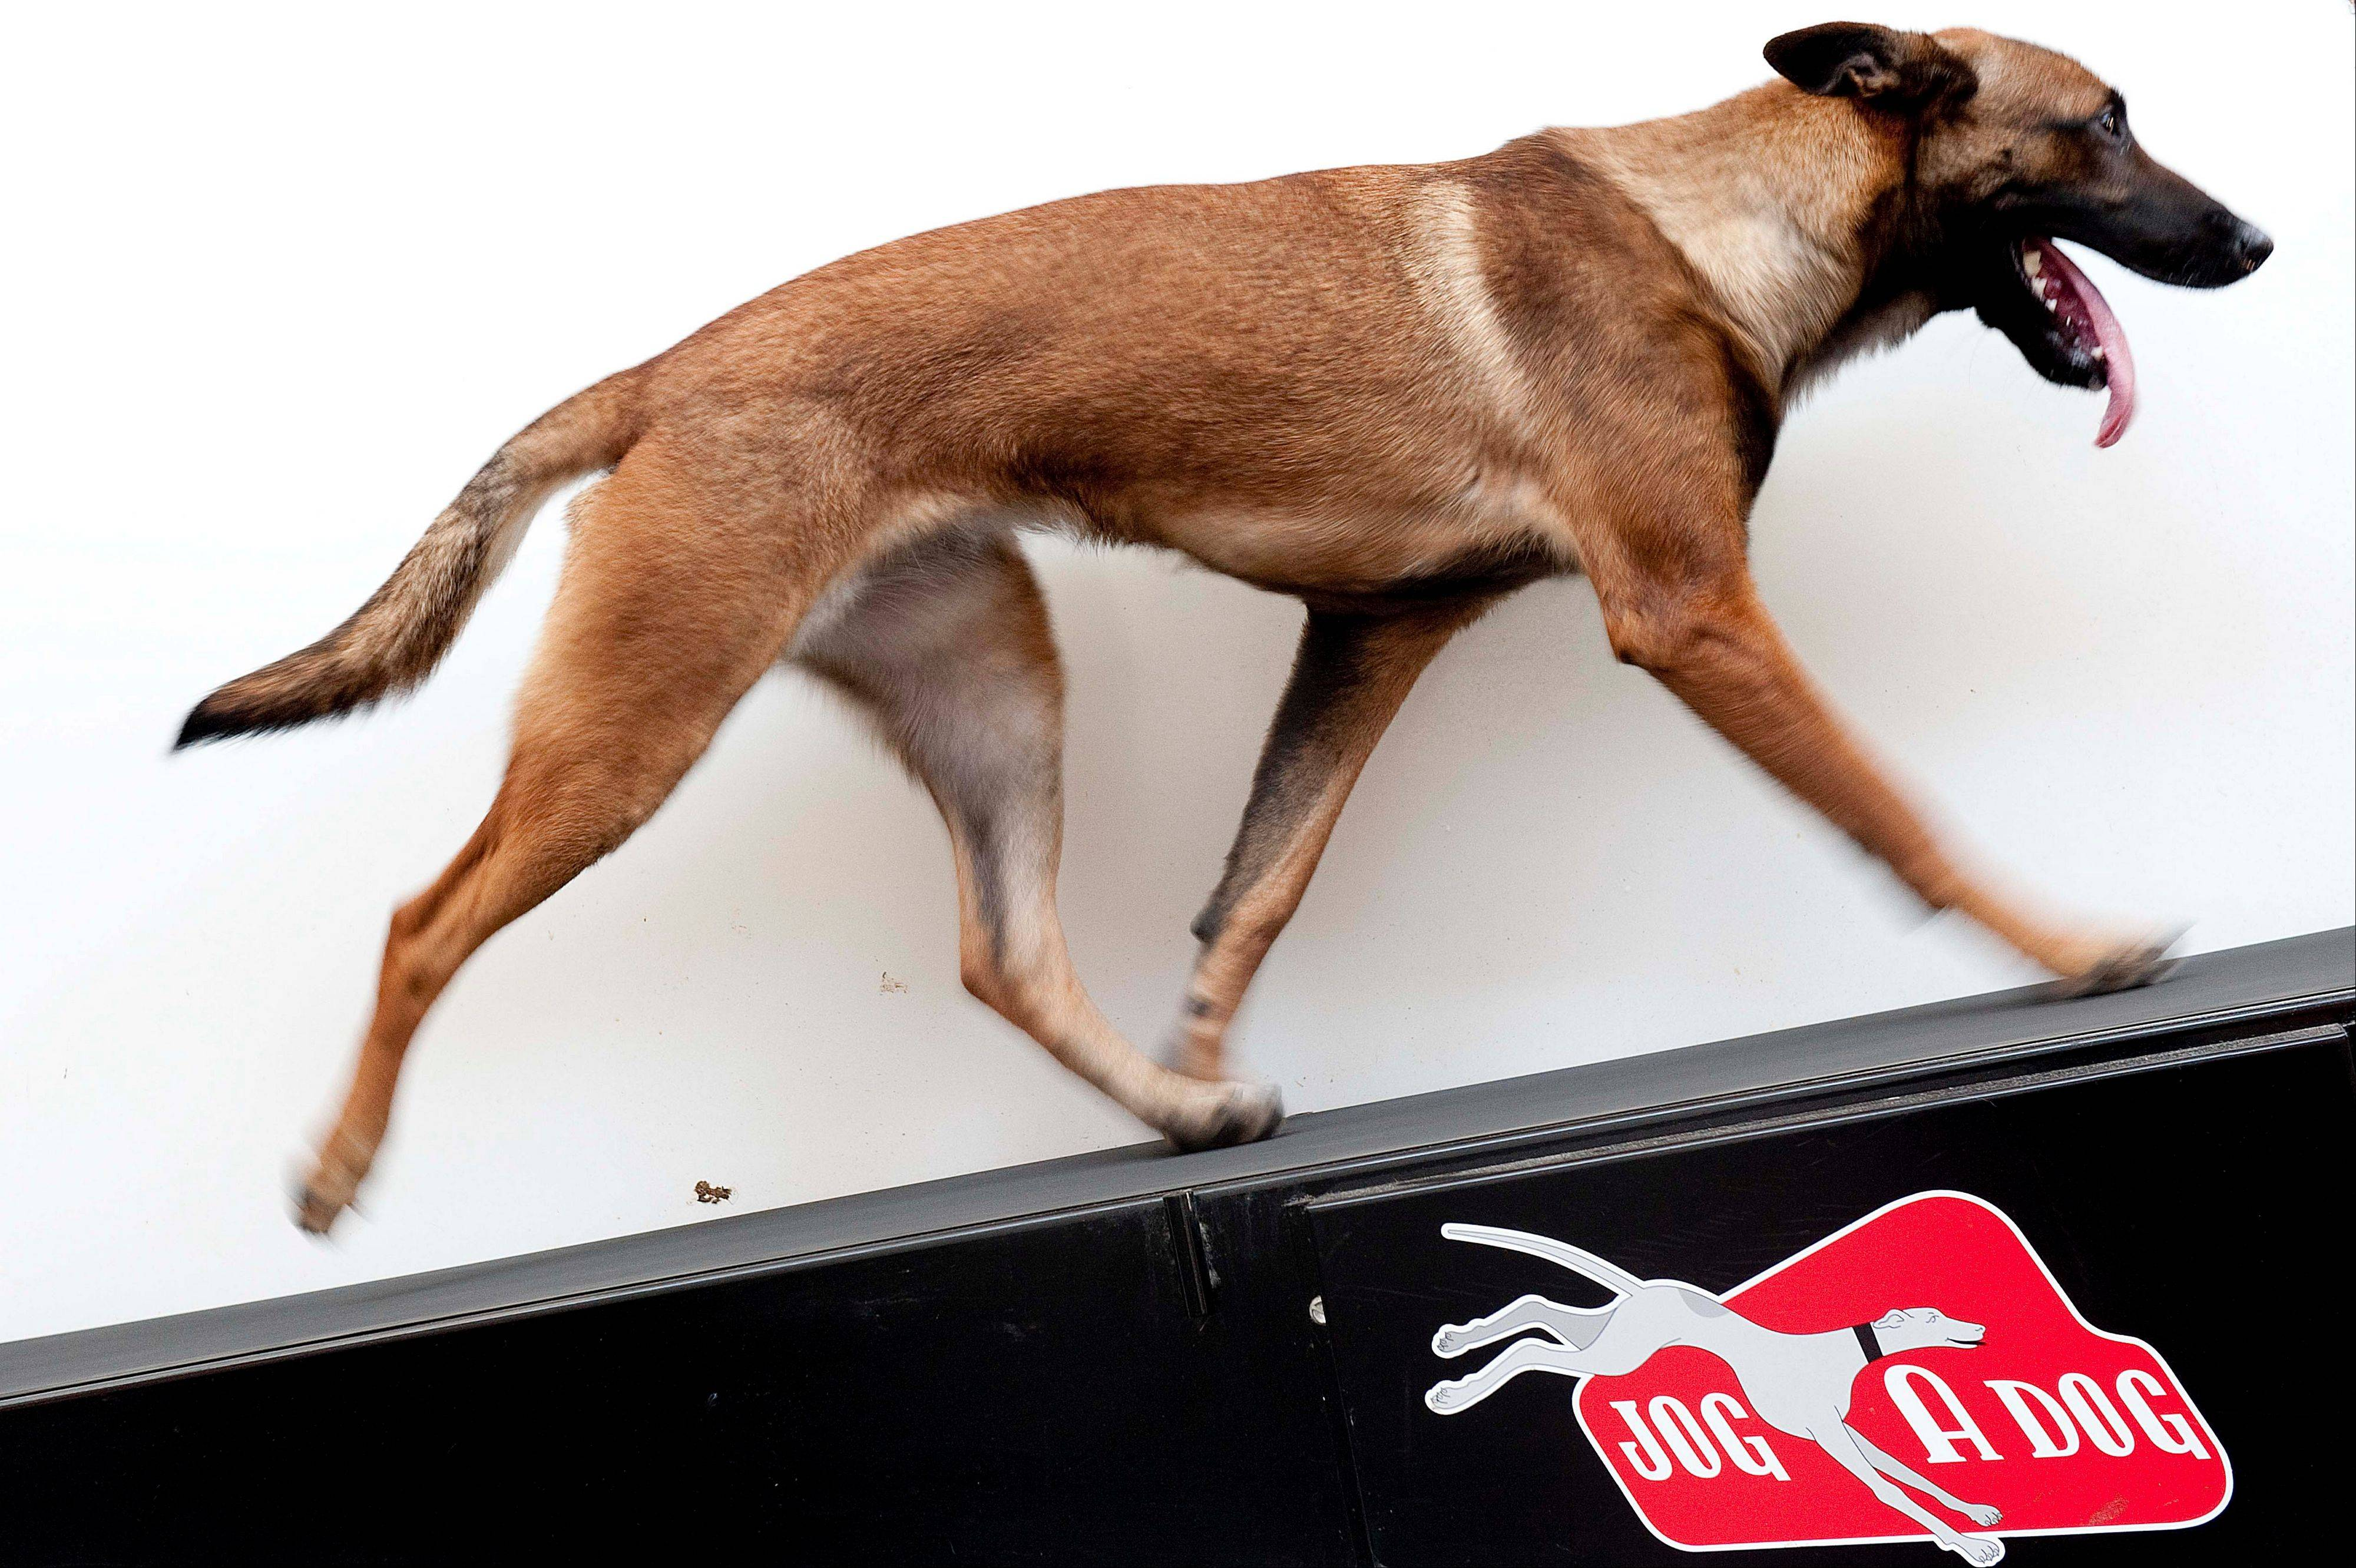 Chryses, a Belgian Malinois, walks the Jog-A-Dog treadmill as part of a demonstration in the enrichment center at LA Dog Works in Los Angeles. The Jog-A-Dog is an industrial model used for professional purposes, unlike the DogPacer, which is meant for home.